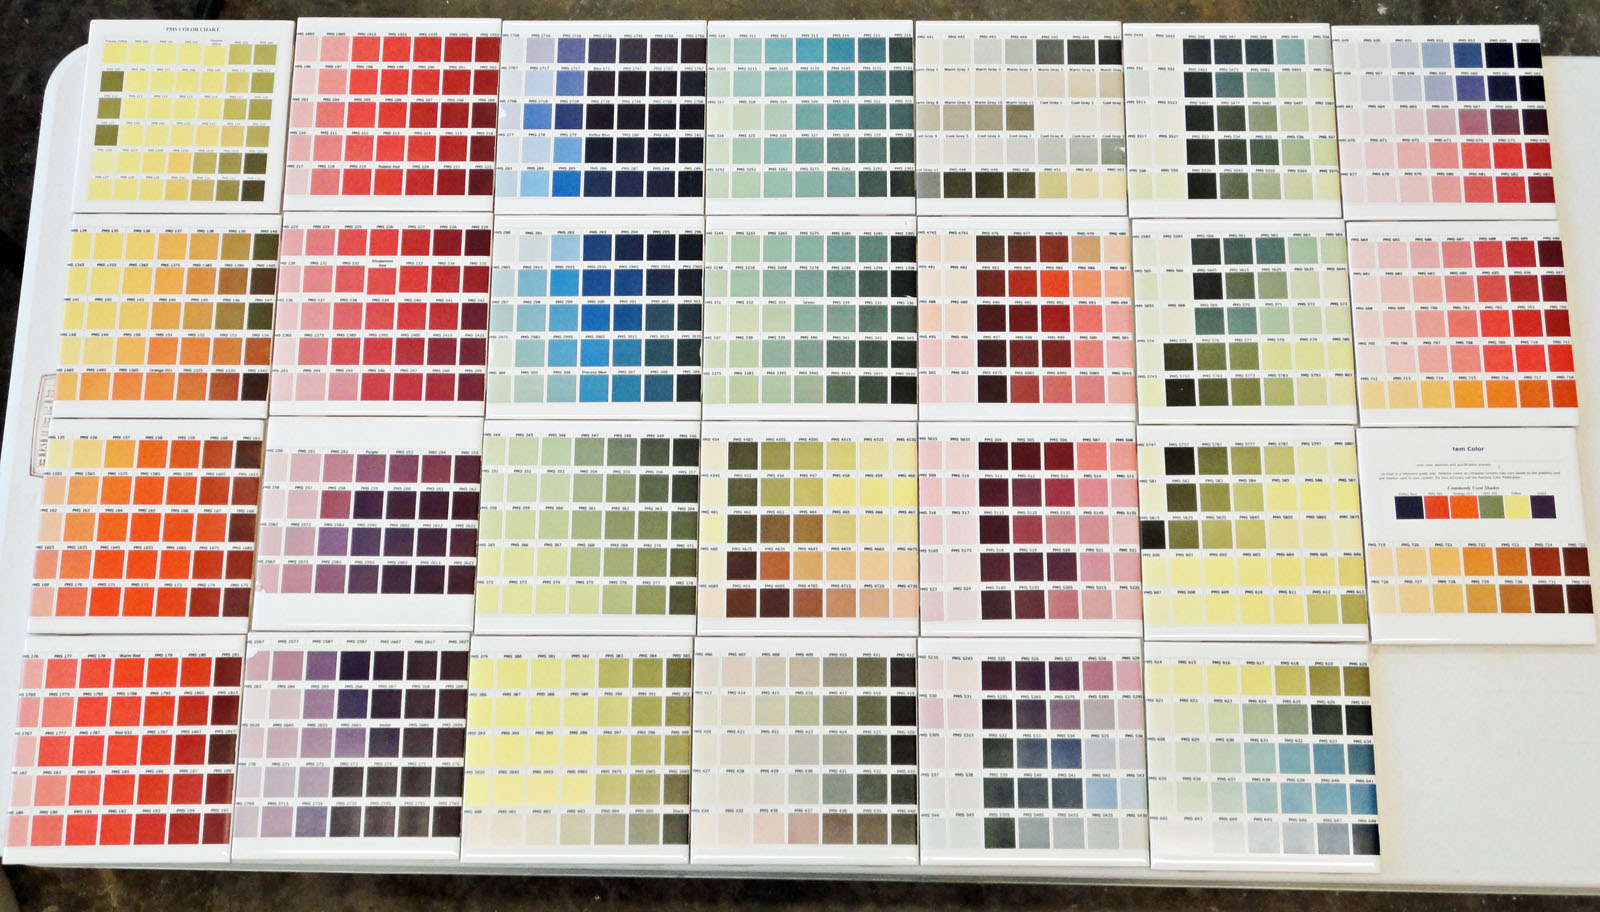 Color Chart Bathtub Reglazing Counter Top Refinishing And Ceramic Tile Mudfire Blogworks Decal Printer